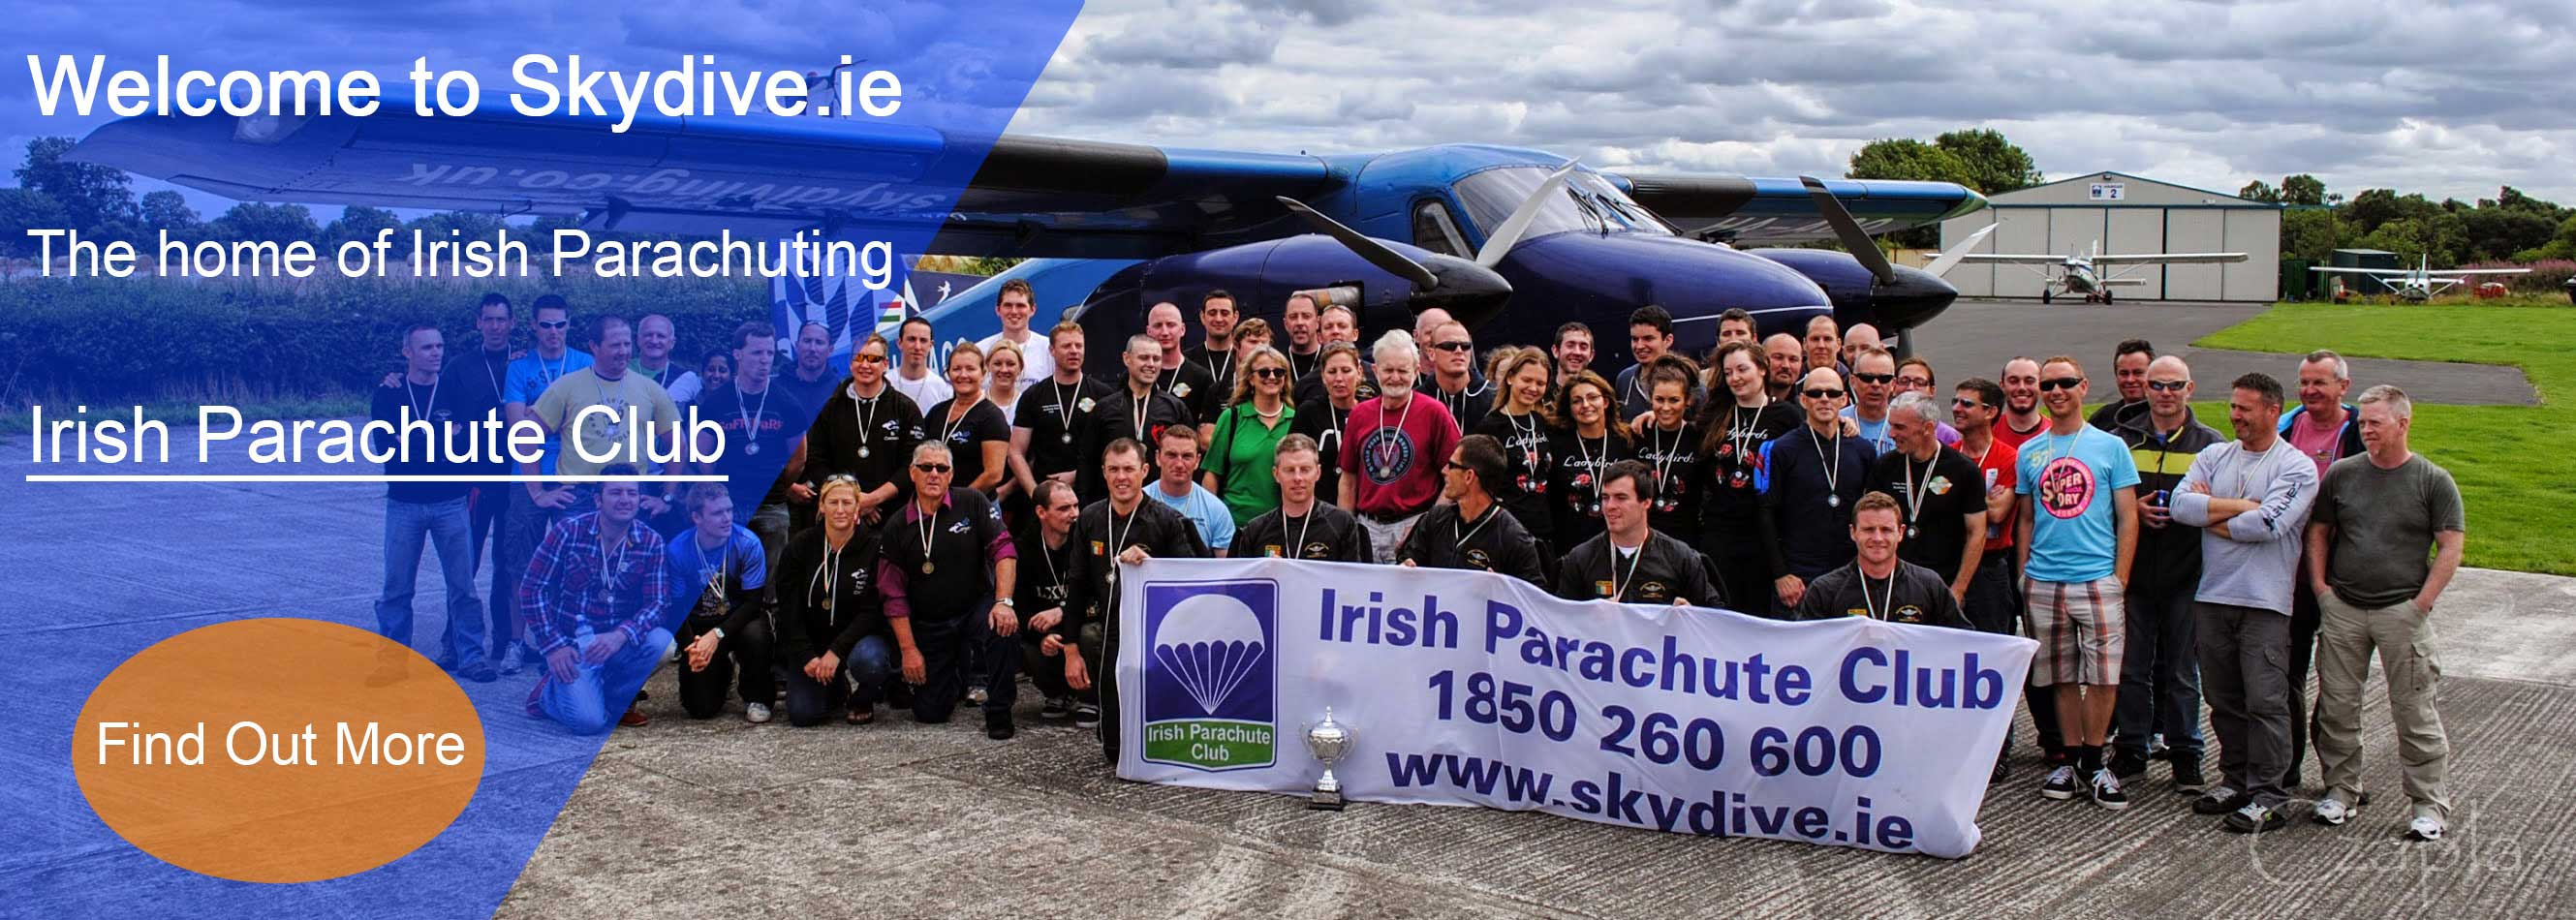 Welcome to Skydive.ie the home of the Irish Parachute Club